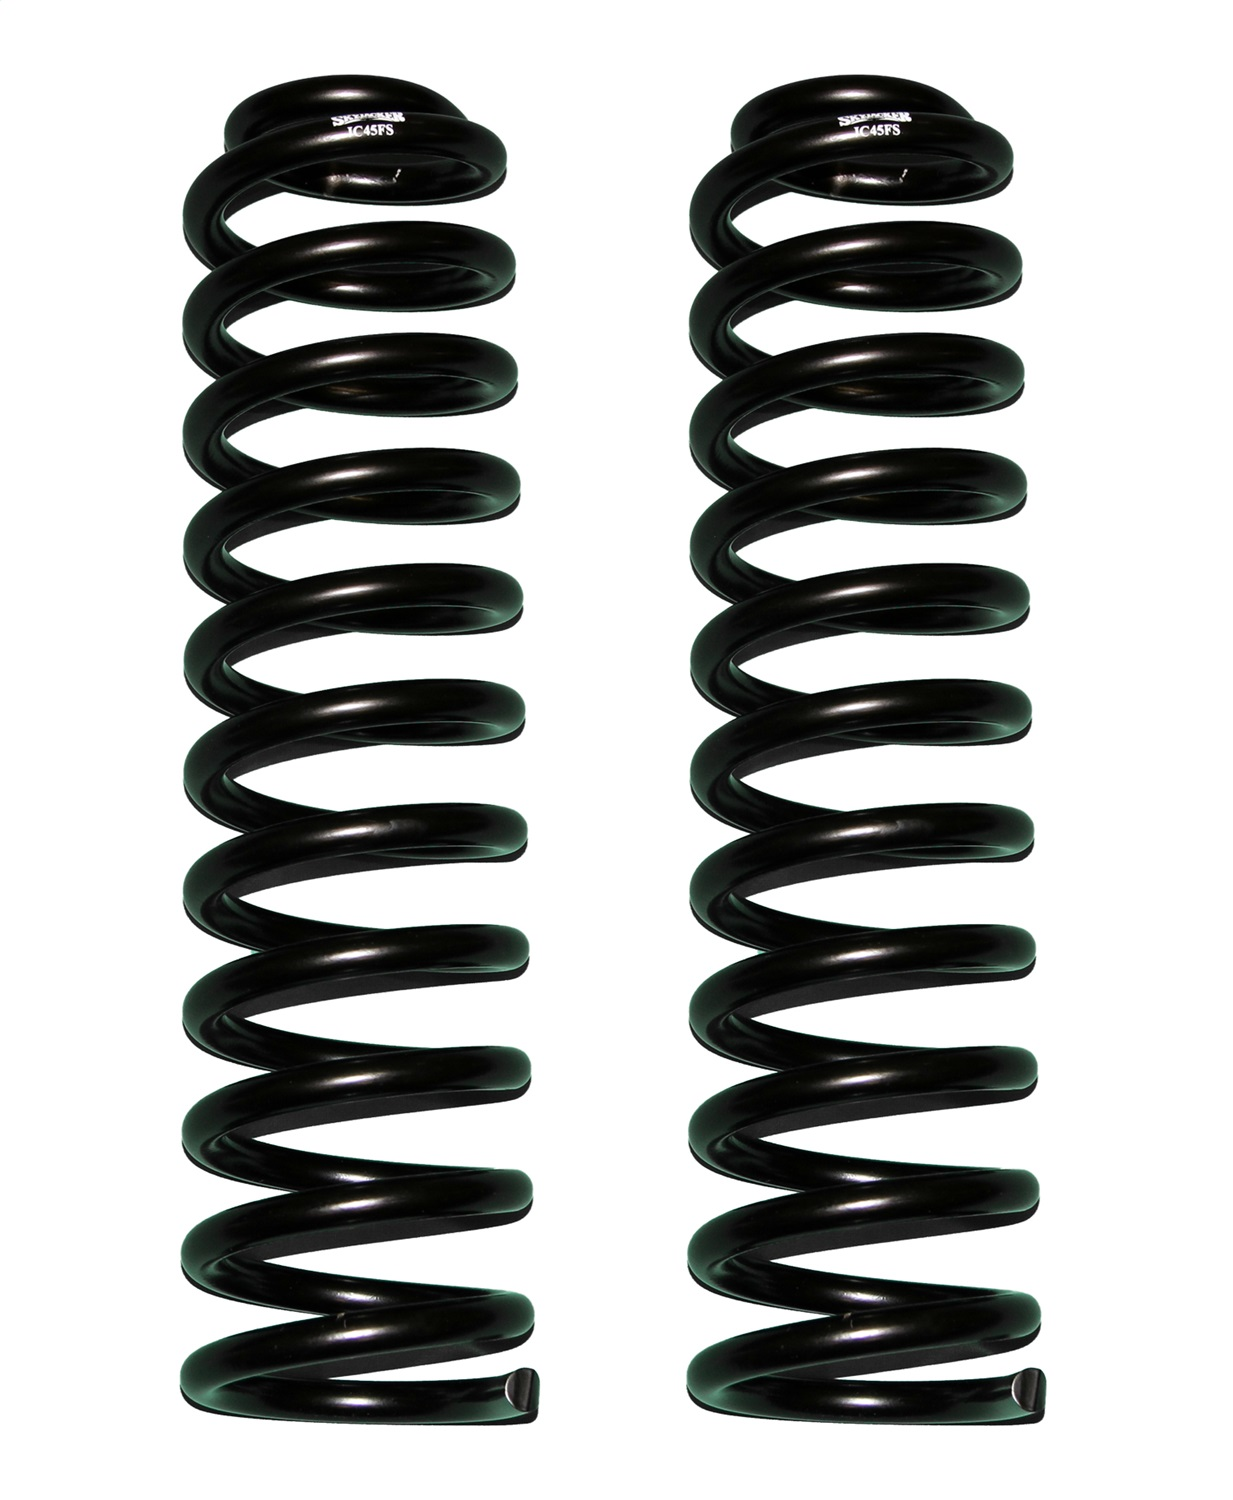 Skyjacker JC45F - Skyjacker Softride Coil Springs